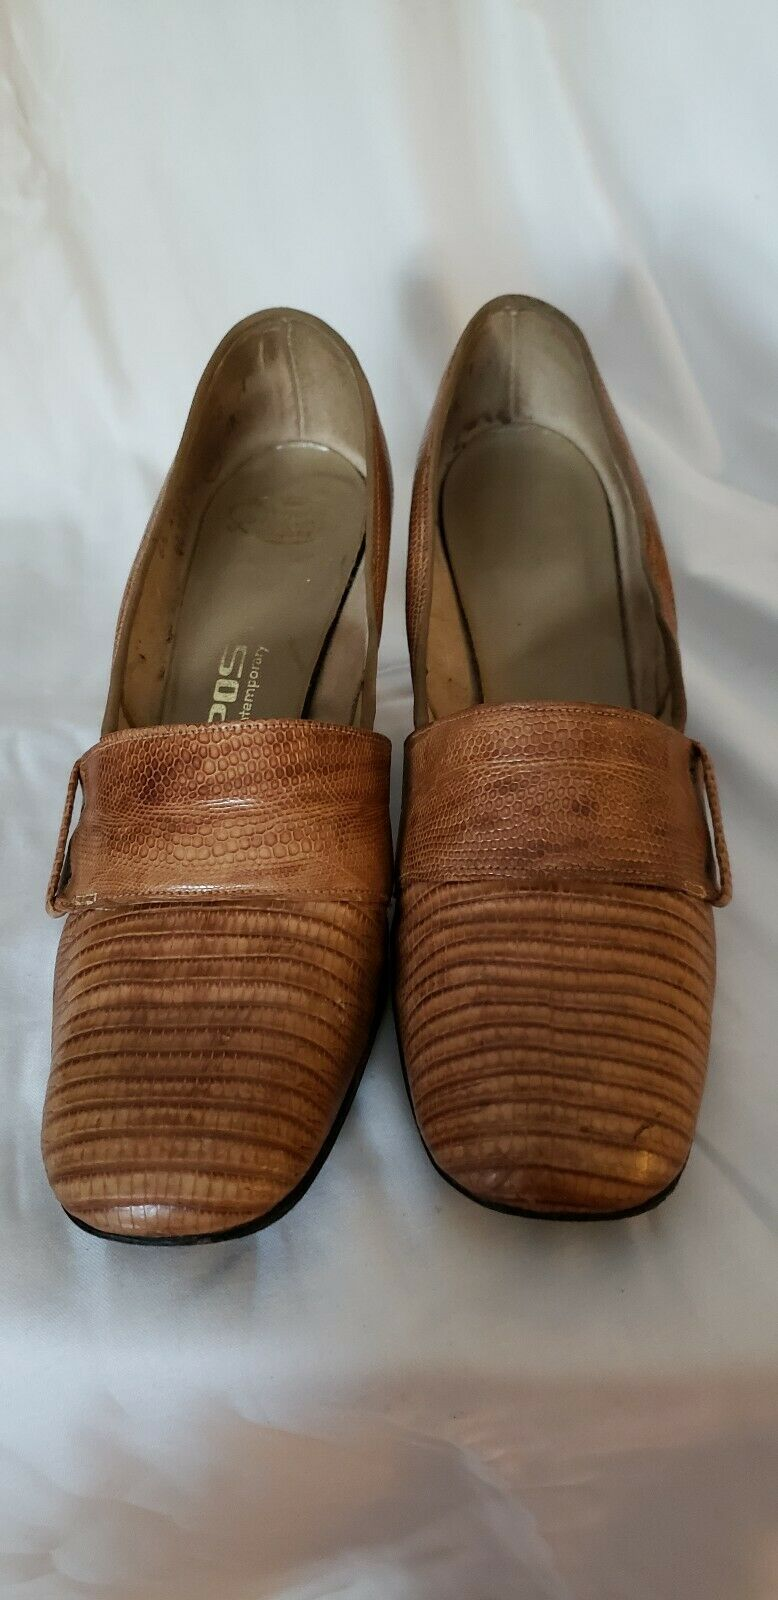 Tempo Genuine Alligator and Lizard Womens Pumps Size 6.5AA color Tan, 2.5  Heel